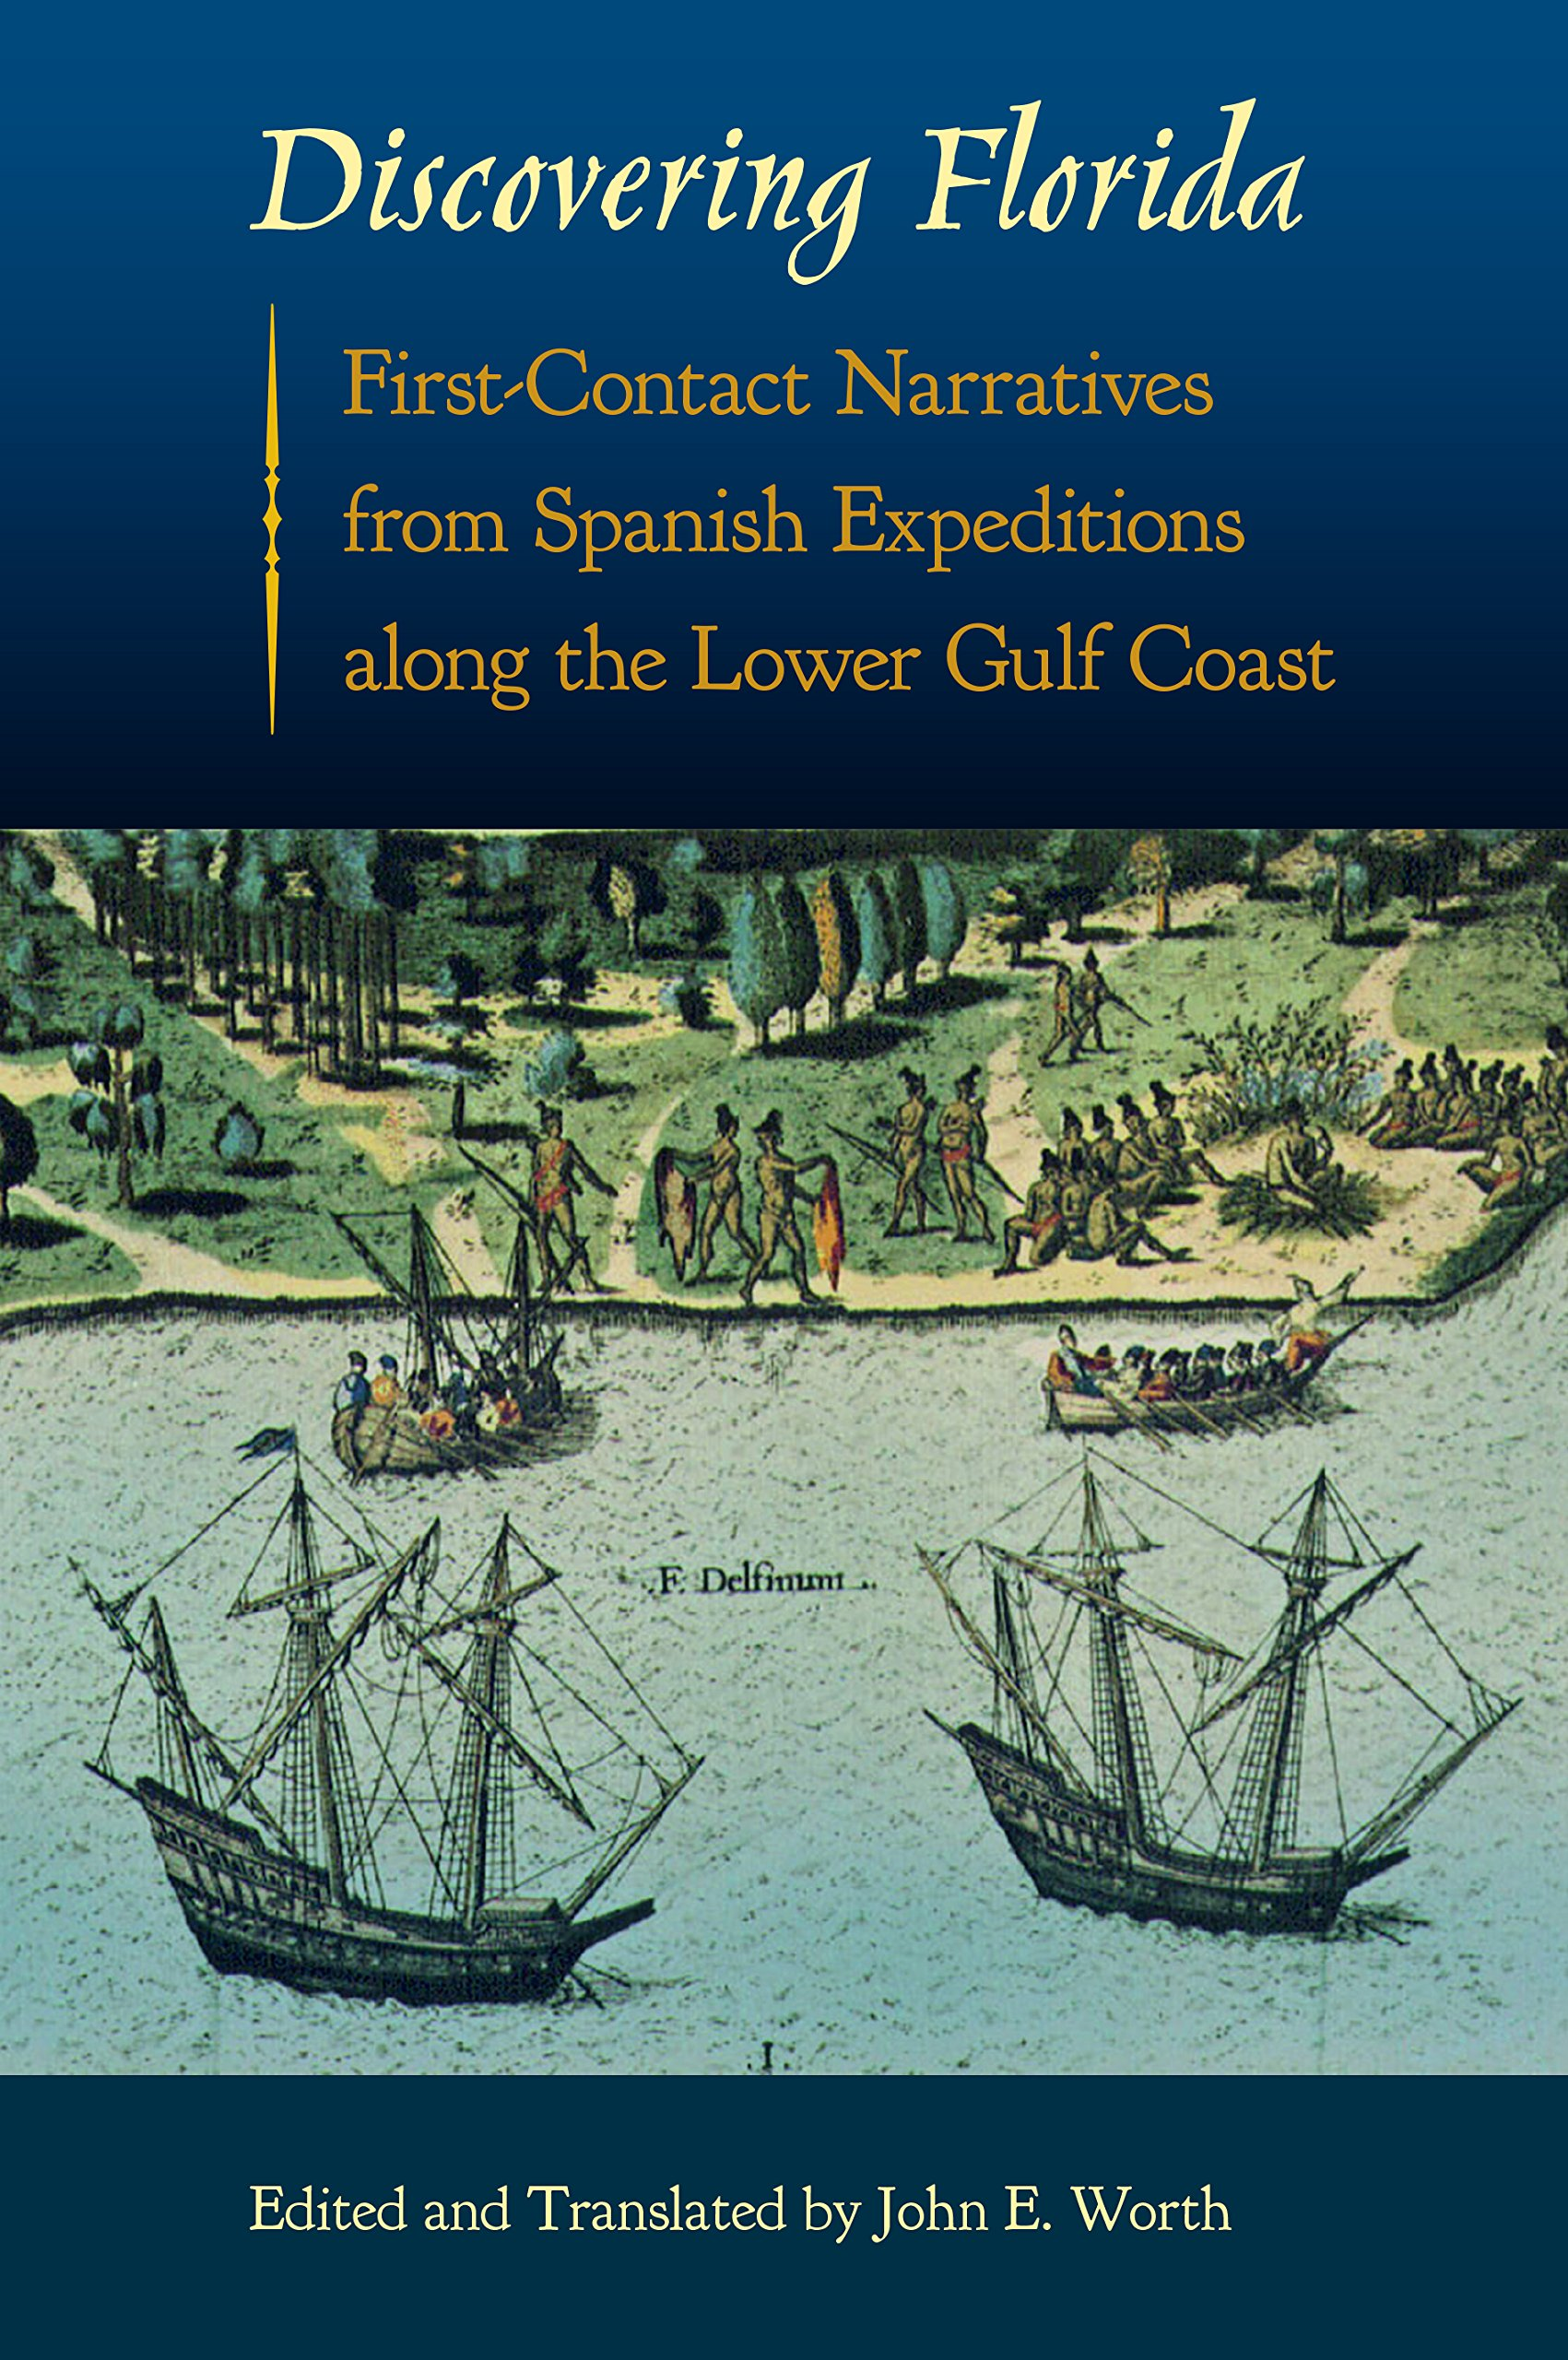 Discovering Florida: First-Contact Narratives from Spanish Expeditions along the Lower Gulf Coast (Florida Museum of Natural History: Ripley P. Bullen Series)